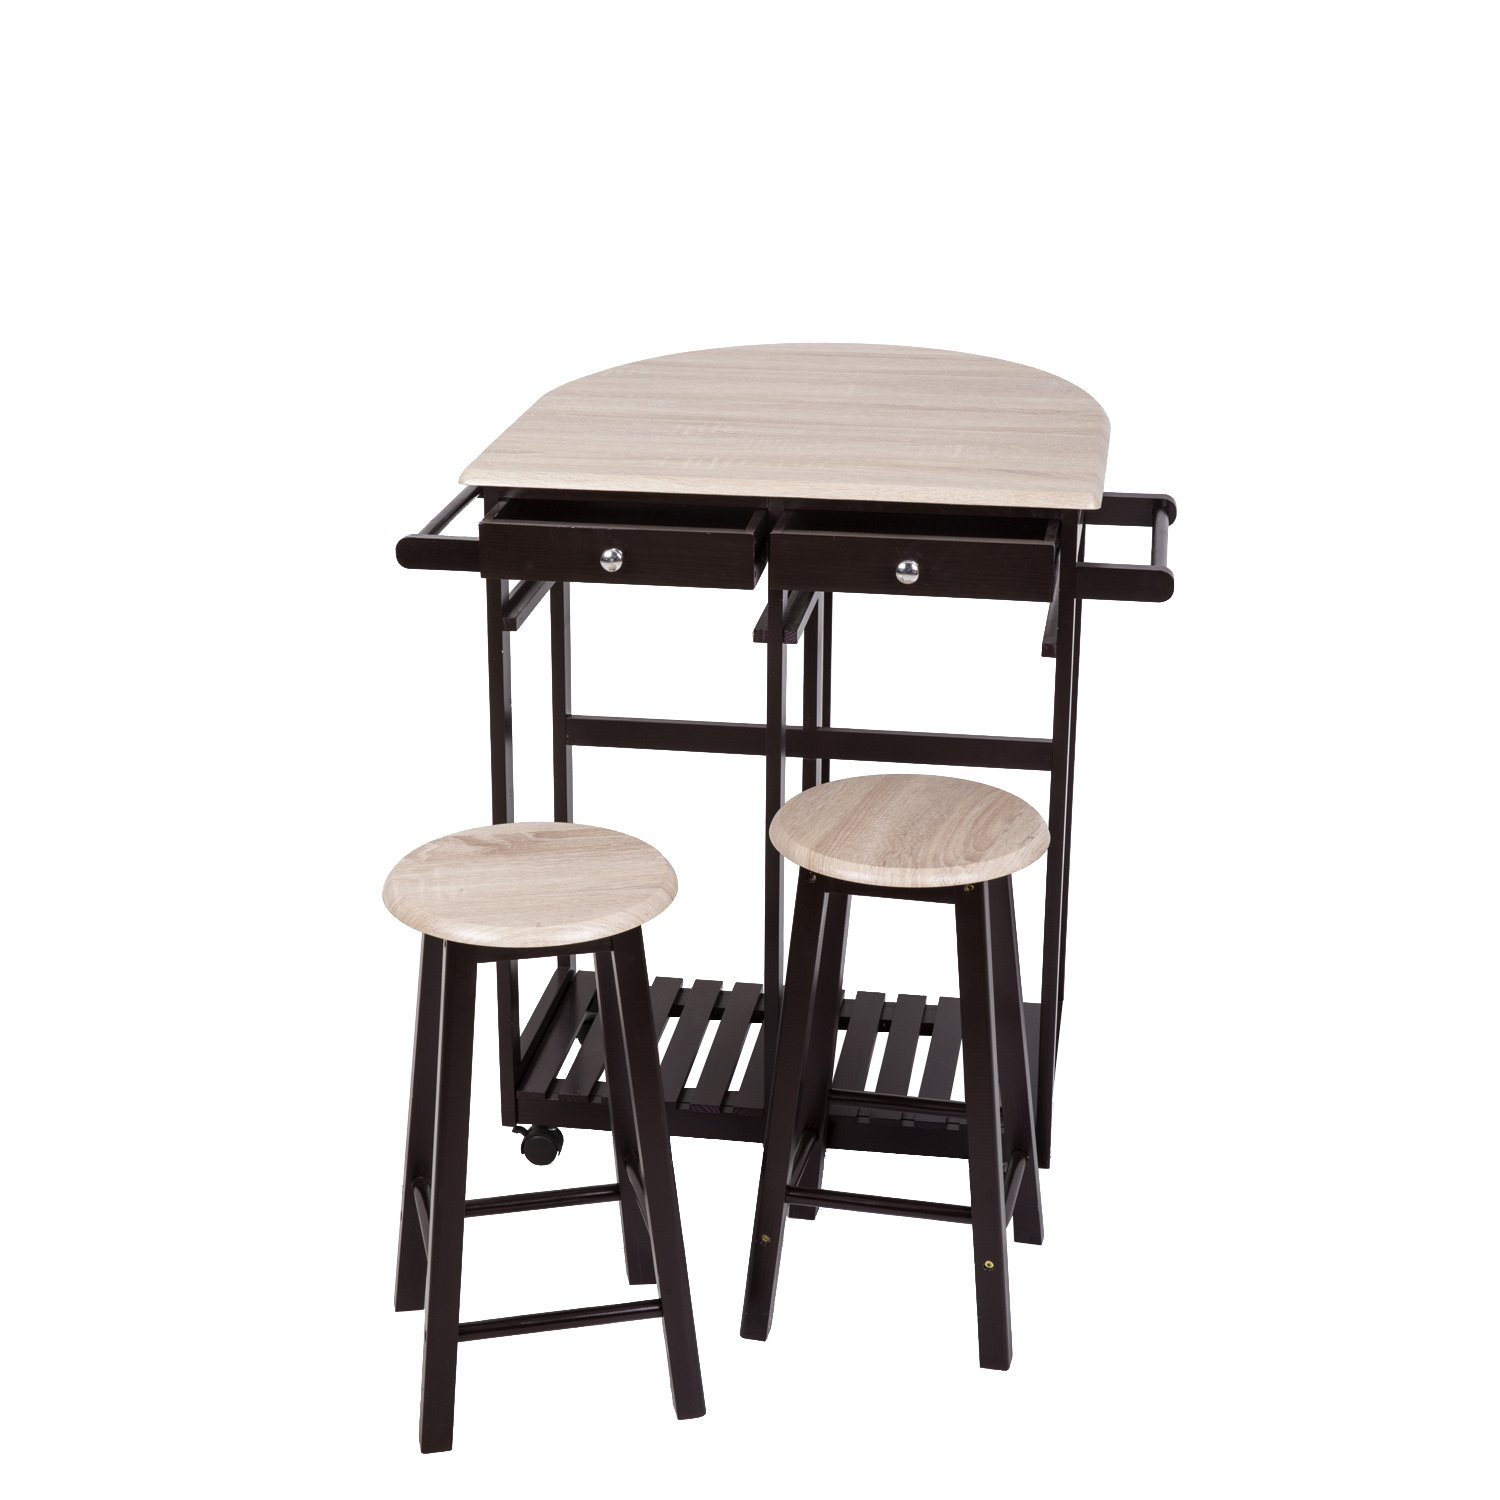 Peach Tree 3-Piece Table Dining Set Home Kitchen Furniture Wooden Rolling Kitchen Trolley Cart Island Foldable Table Drop Leaf, Breakfast Bar, Dining Table Set w/2 Stools by Kinsunny